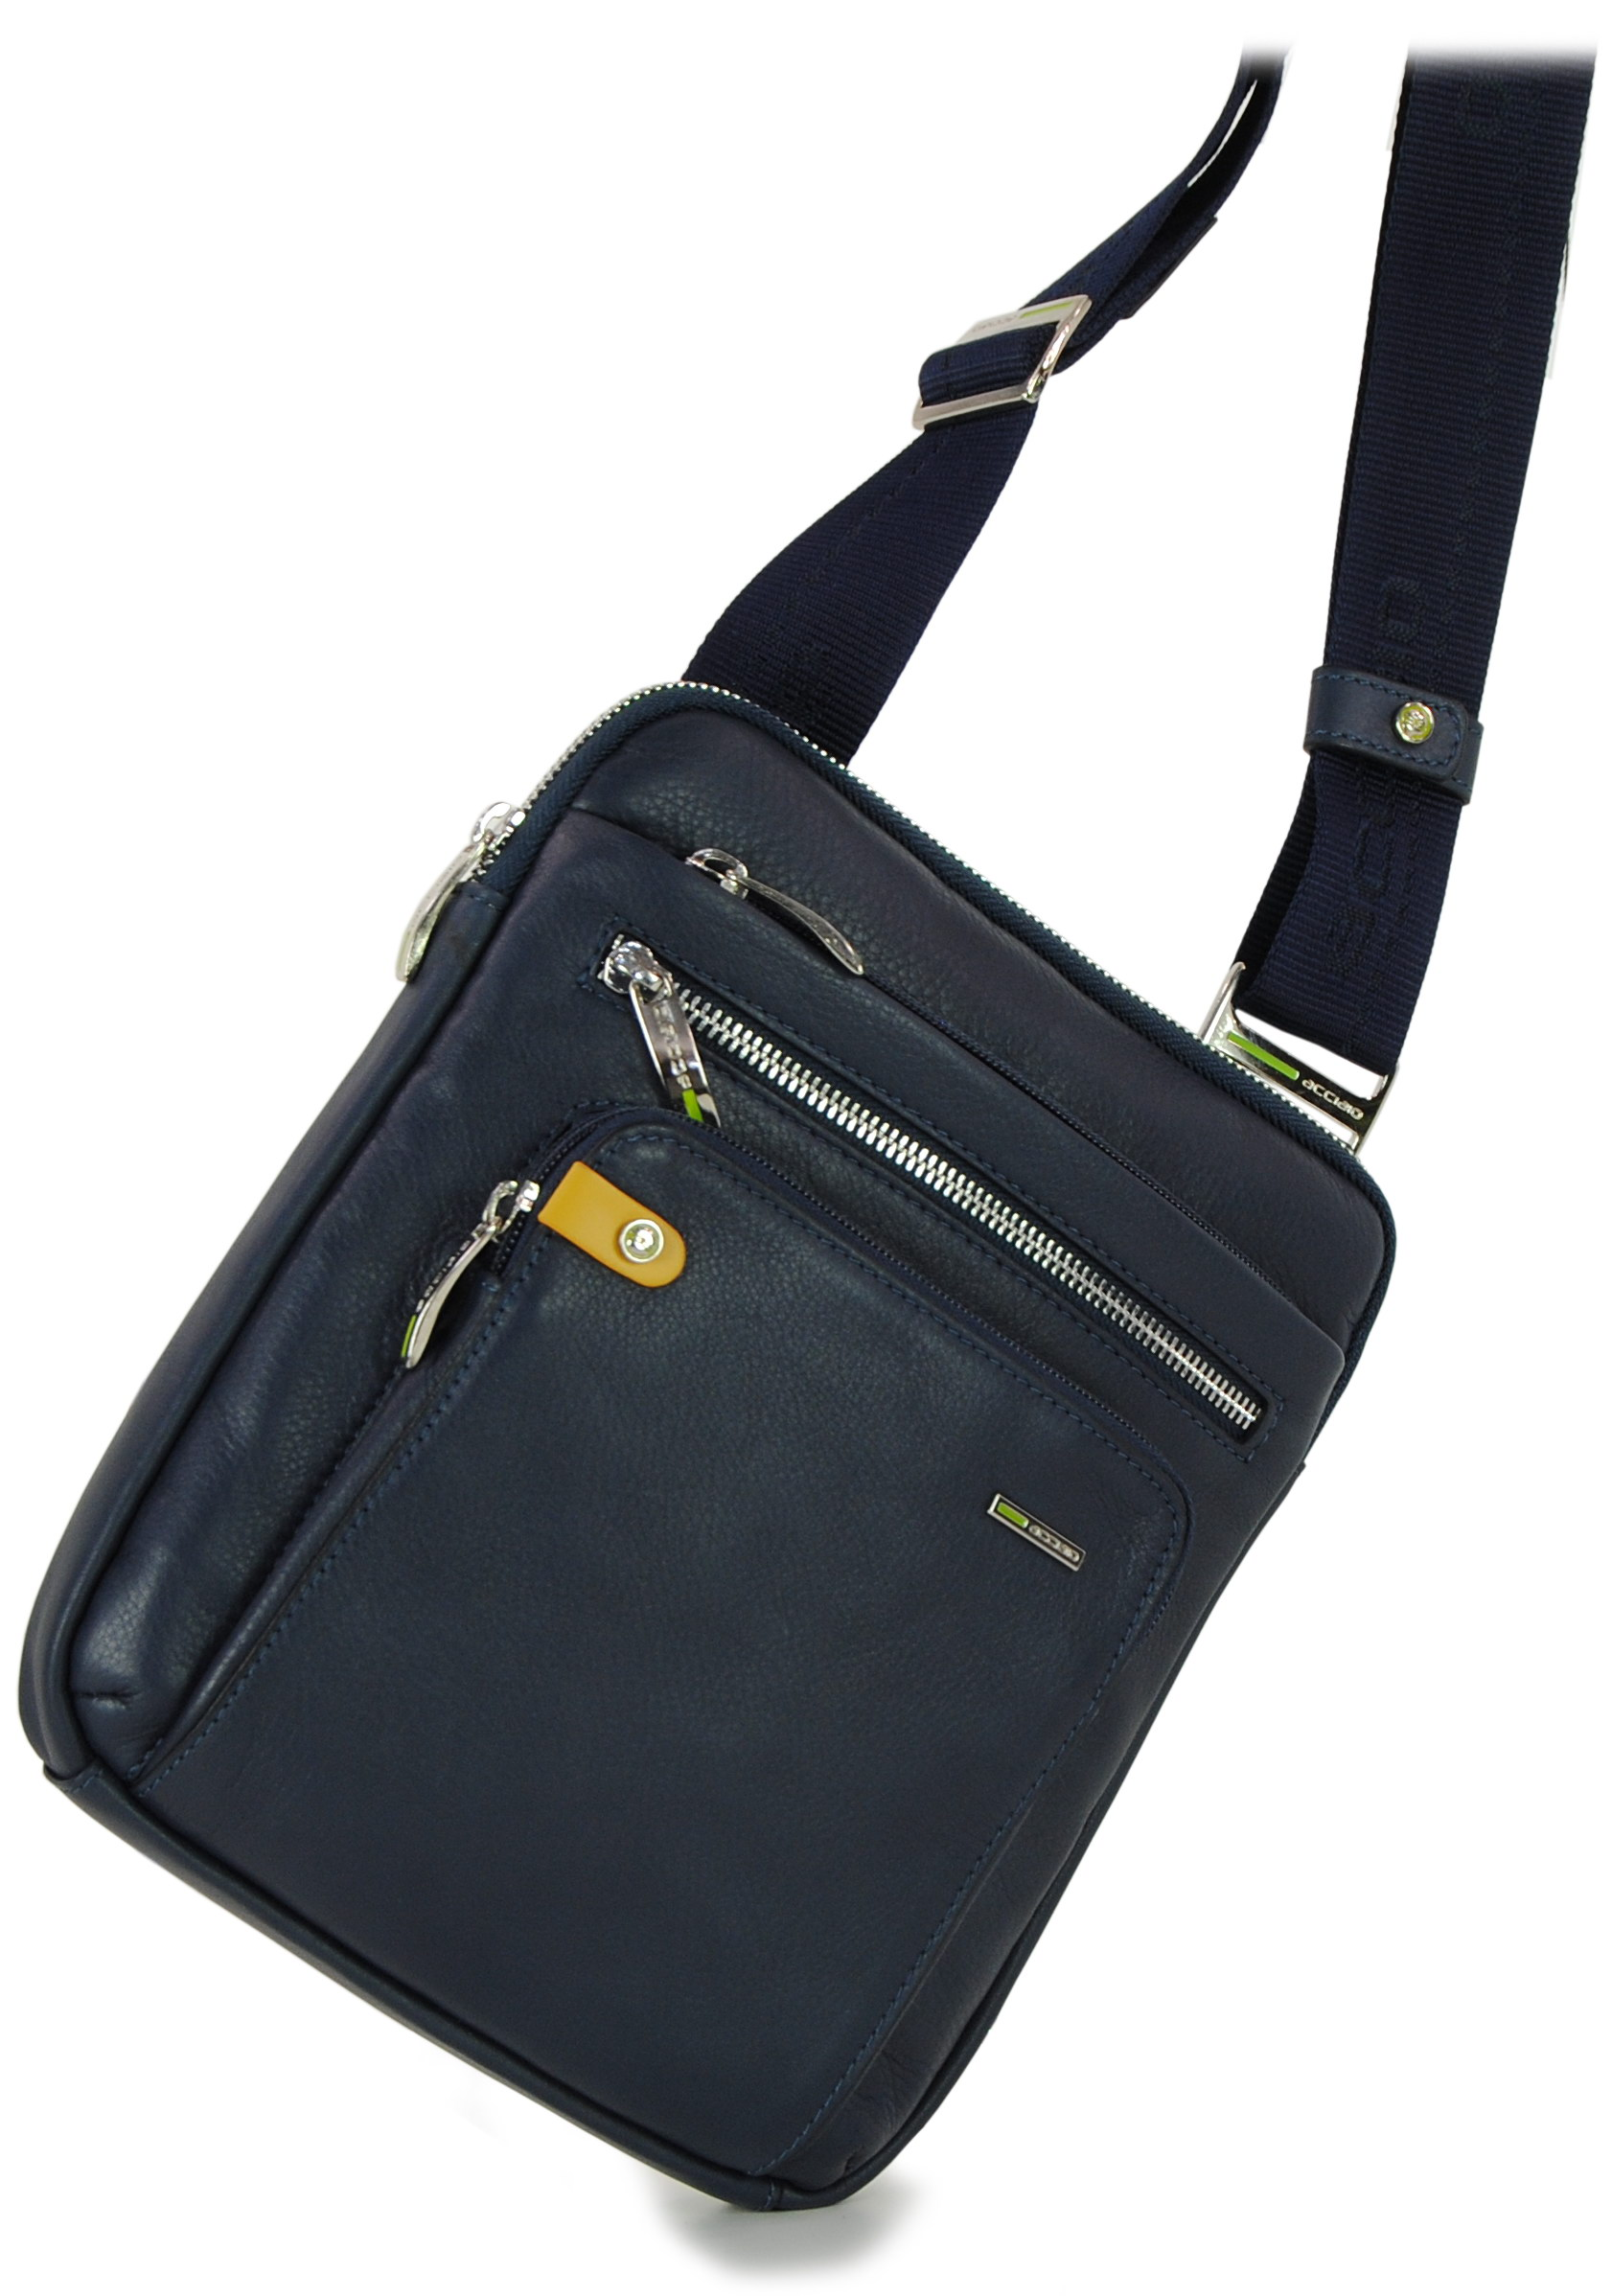 ipad shoulder bag in leather blue navy, made in Italy | Acciaio